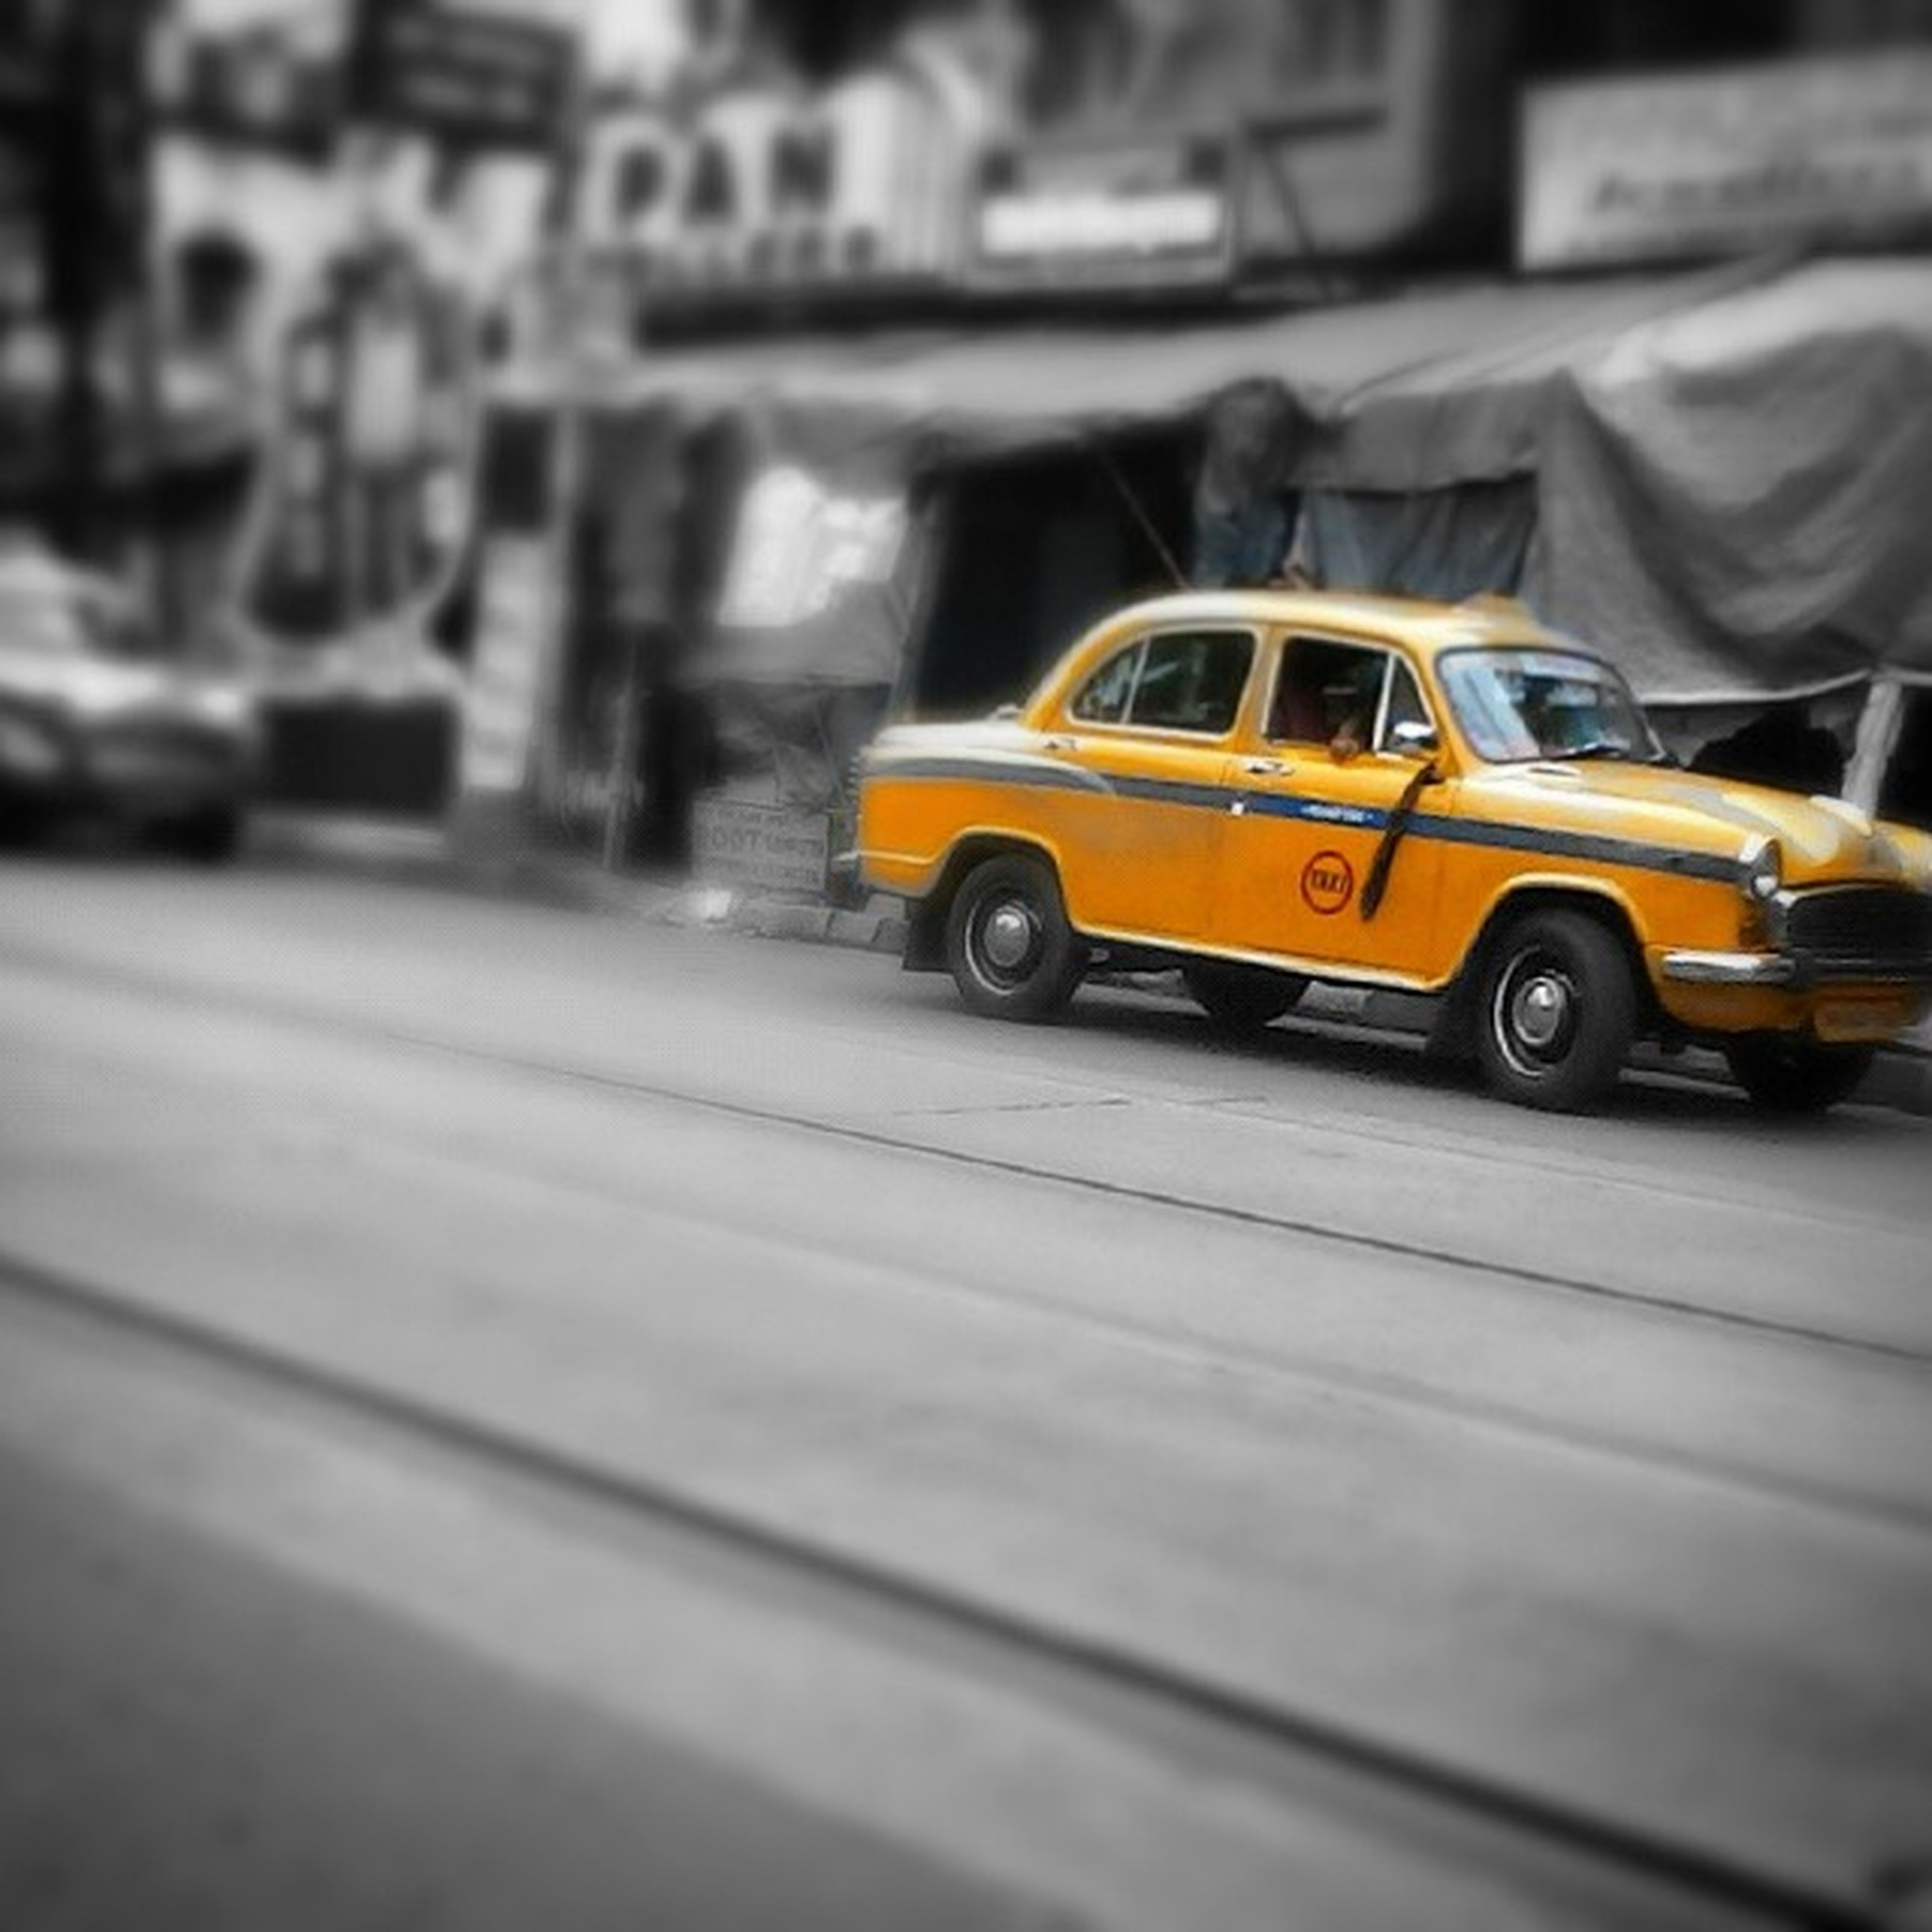 transportation, land vehicle, mode of transport, car, street, yellow, selective focus, road, focus on foreground, stationary, travel, on the move, outdoors, building exterior, vehicle, day, close-up, no people, parking, city